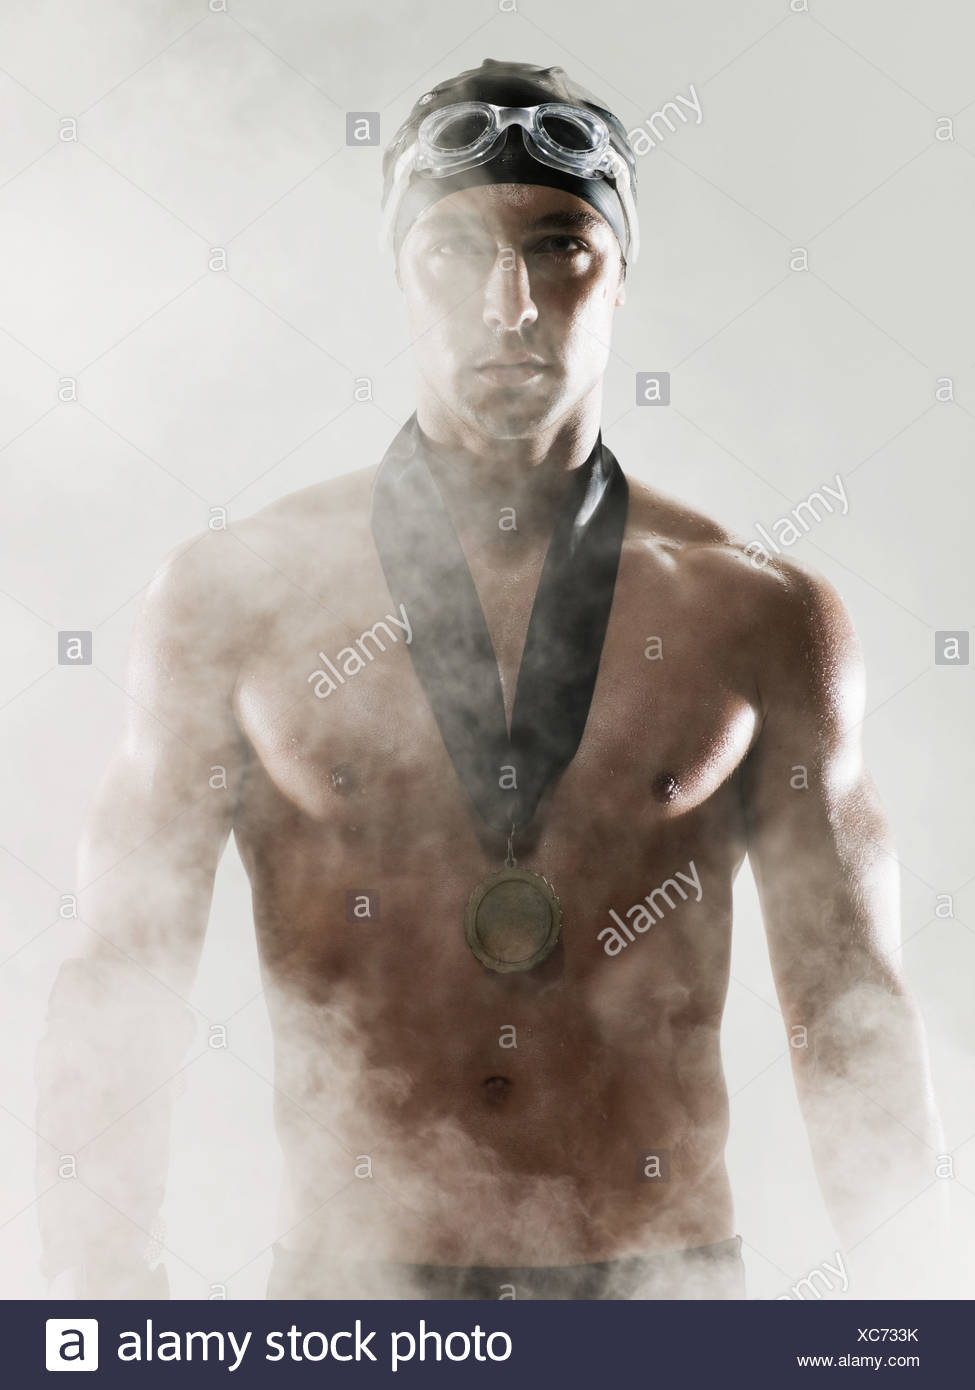 A swimmer wearing a medal - Stock Image